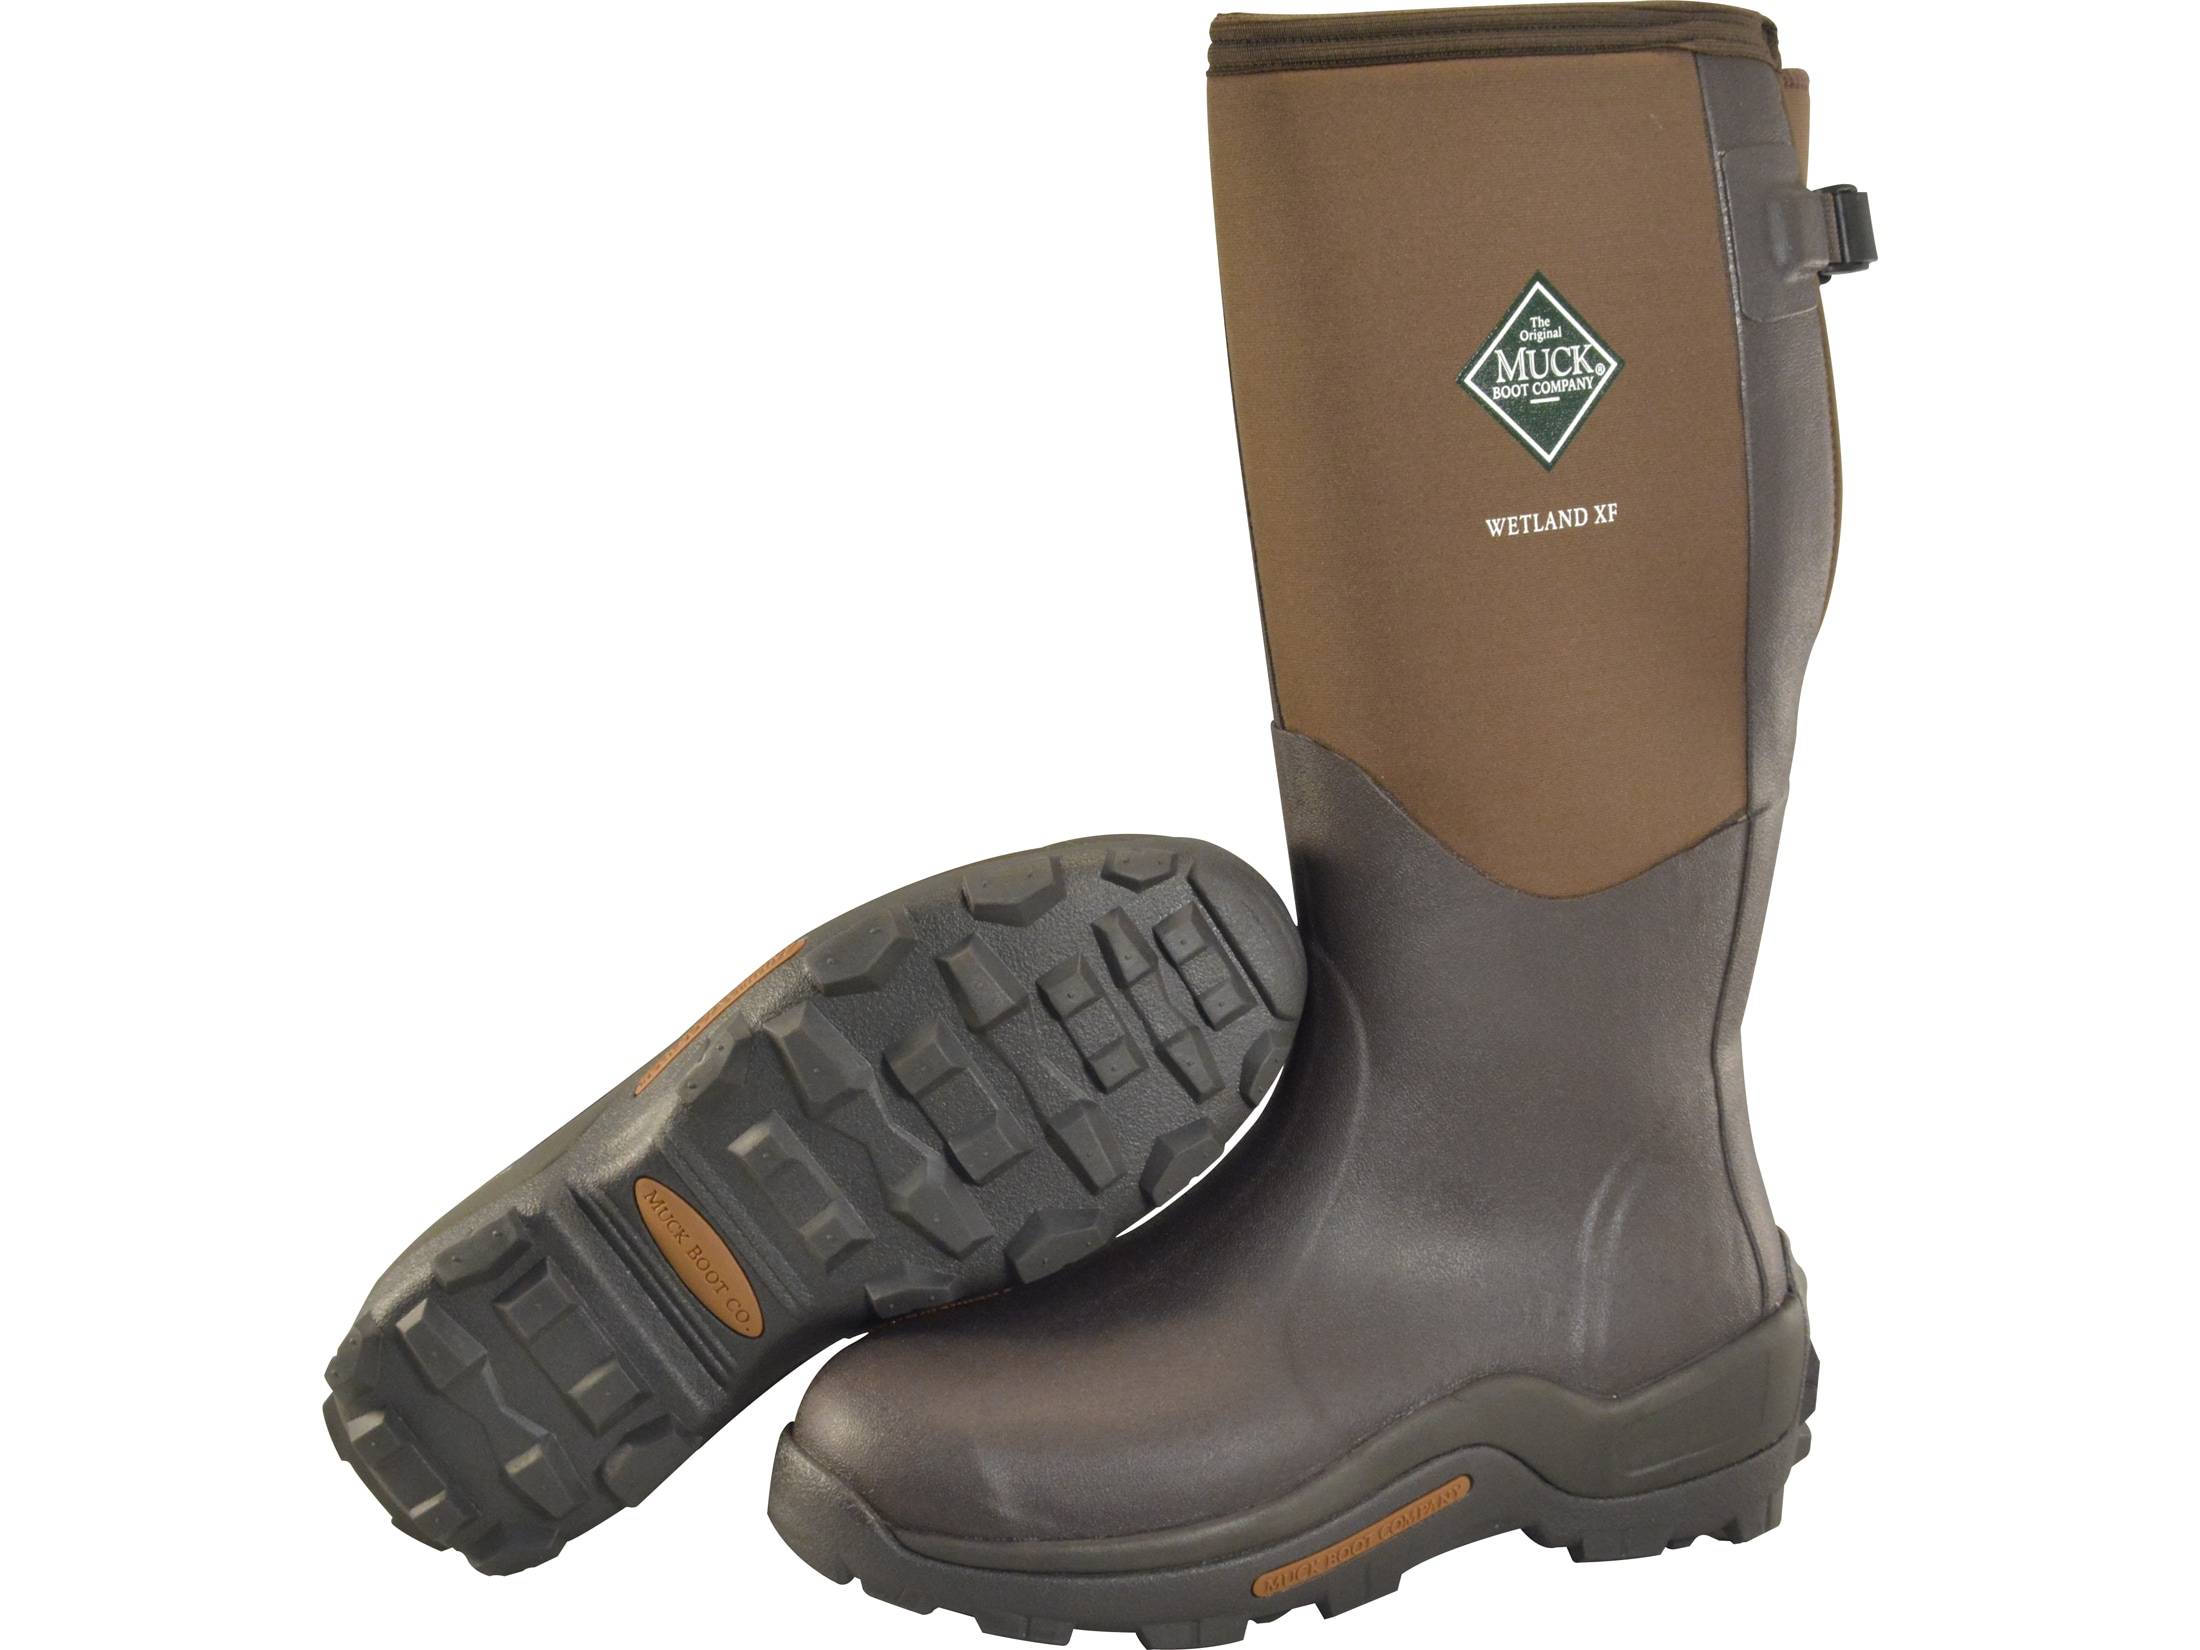 Muck Wetland XF 16.5 Hunting Boots